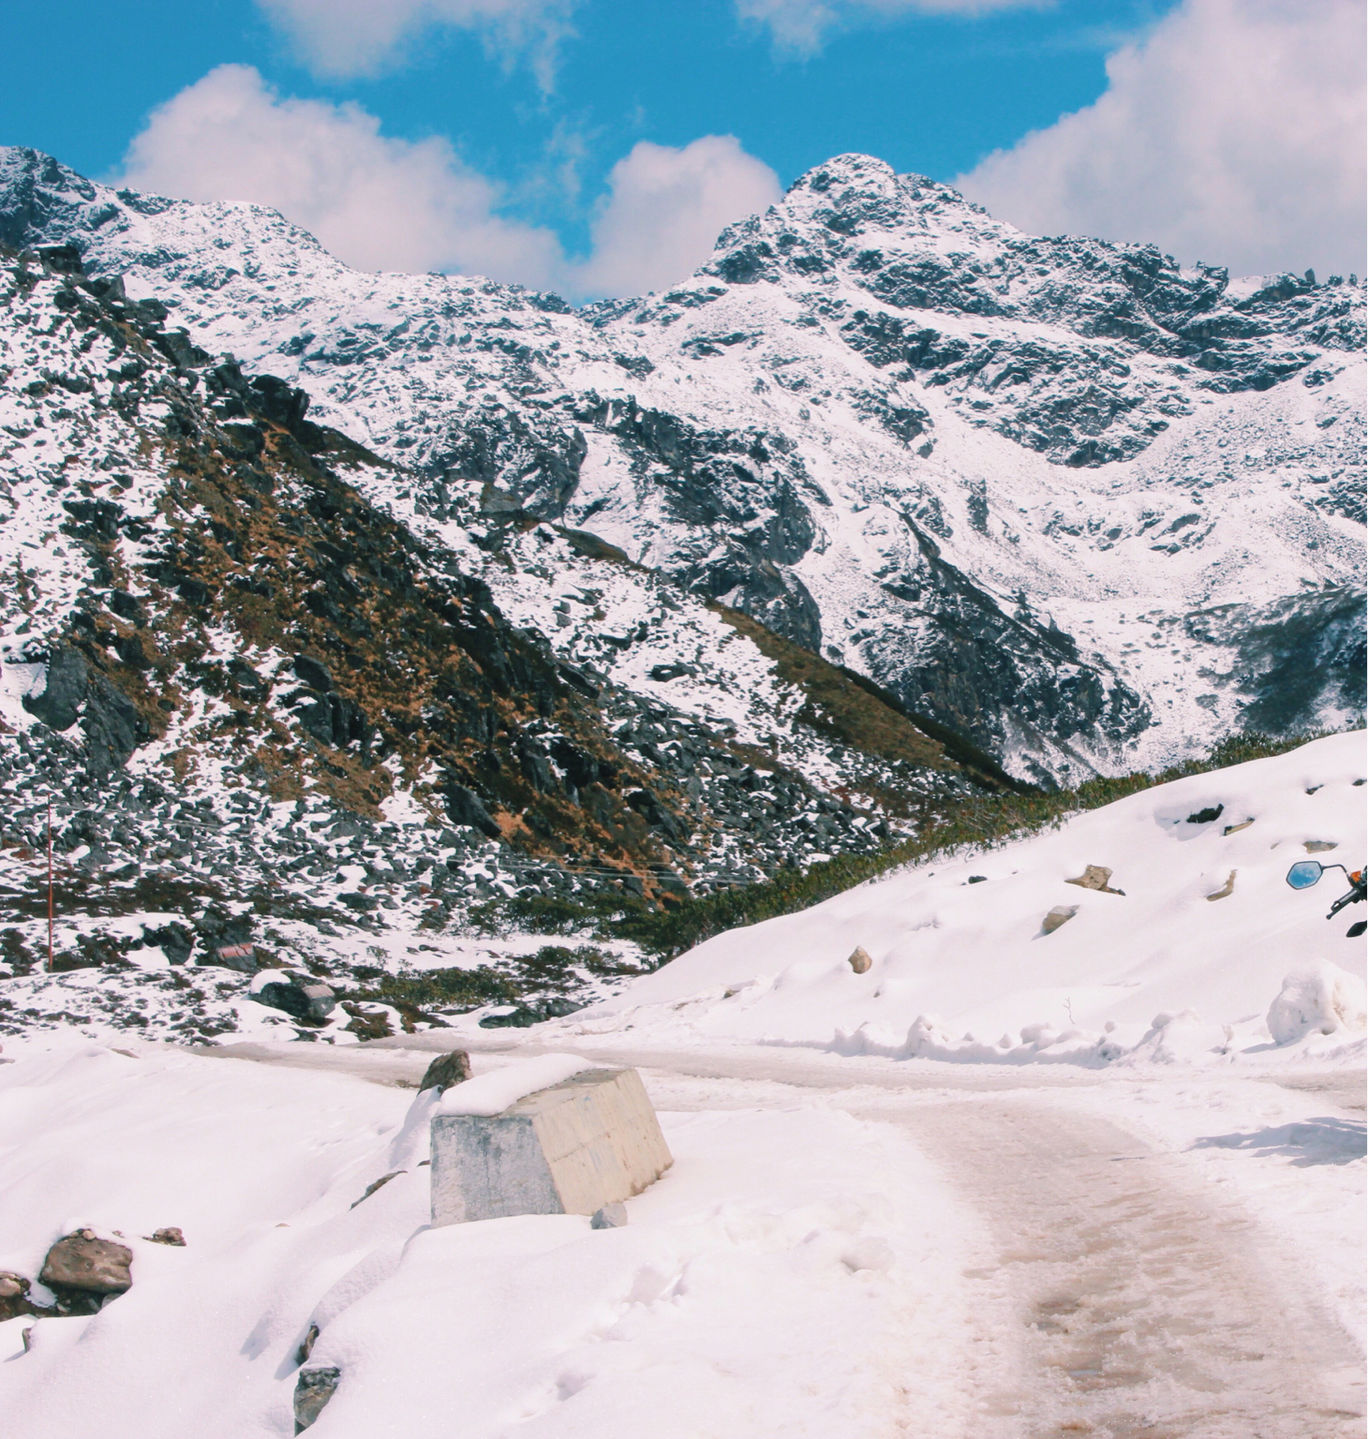 Photo of Tawang & Bumla Pass (15,200ft ASL) By Gokul Saikia